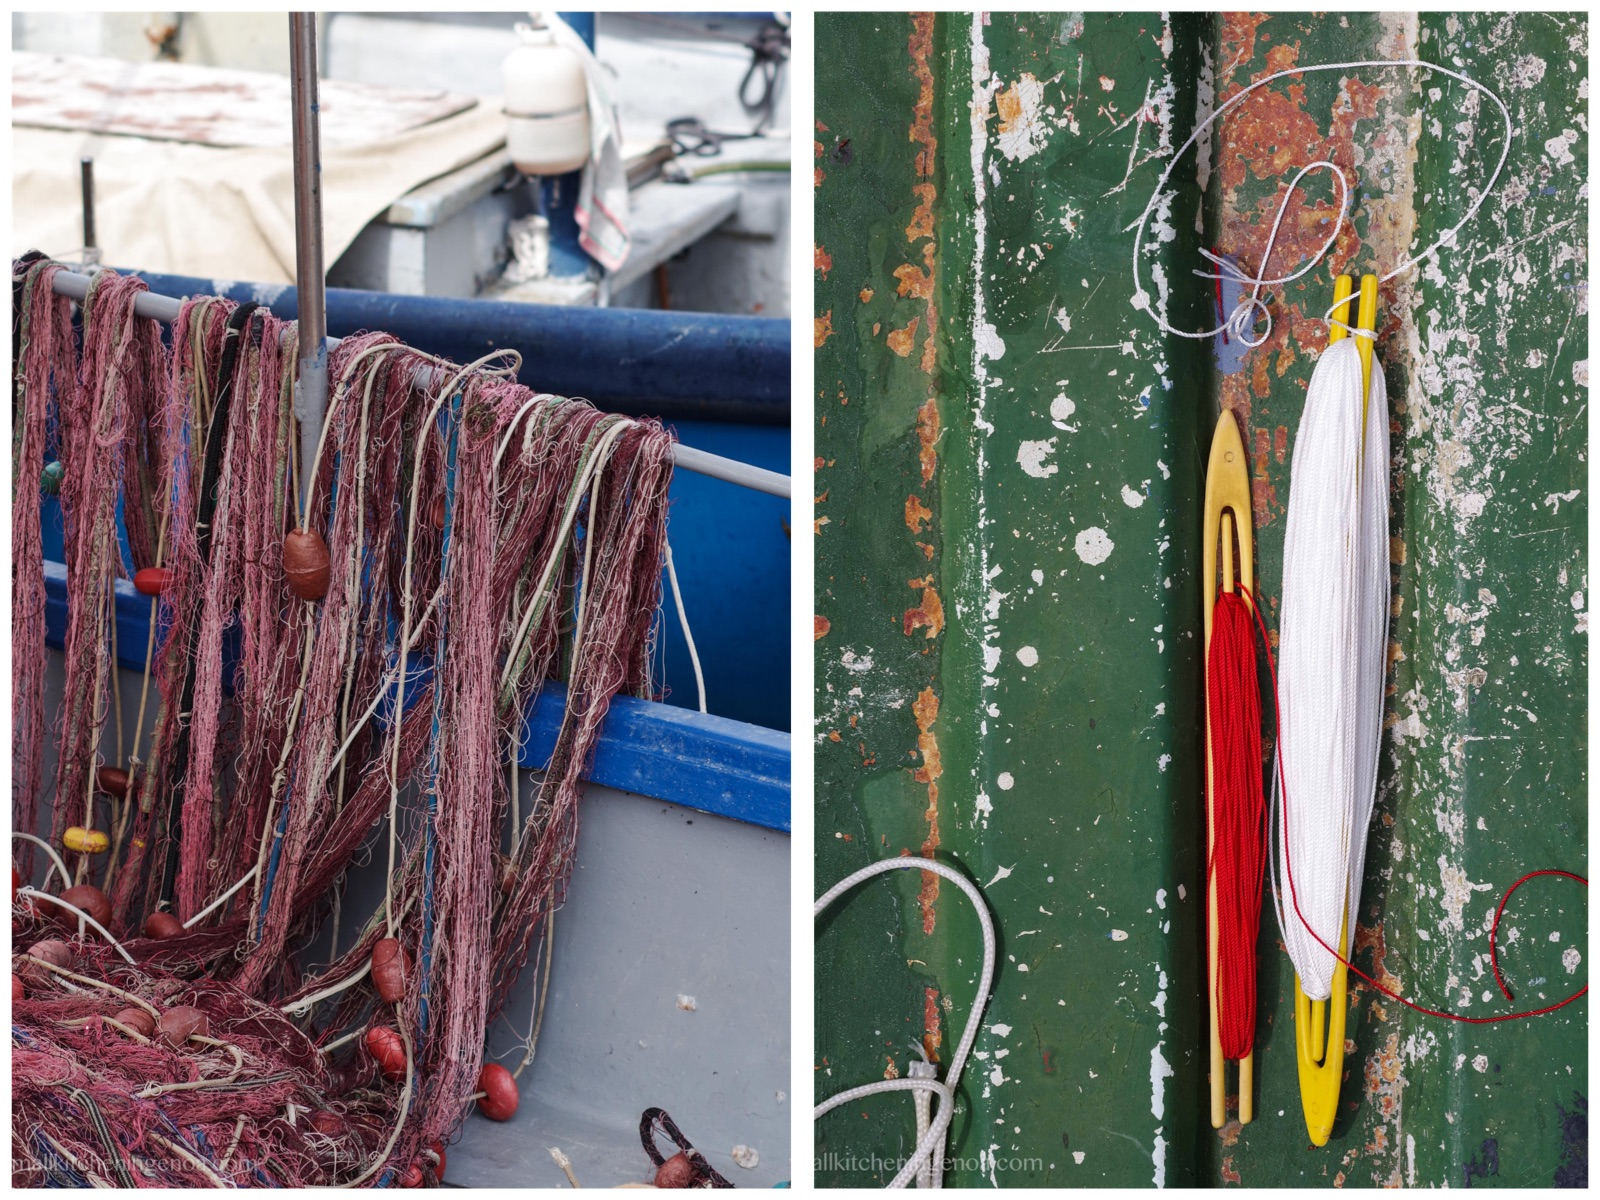 Genoa fish market: a stroll among fishermen and their nets